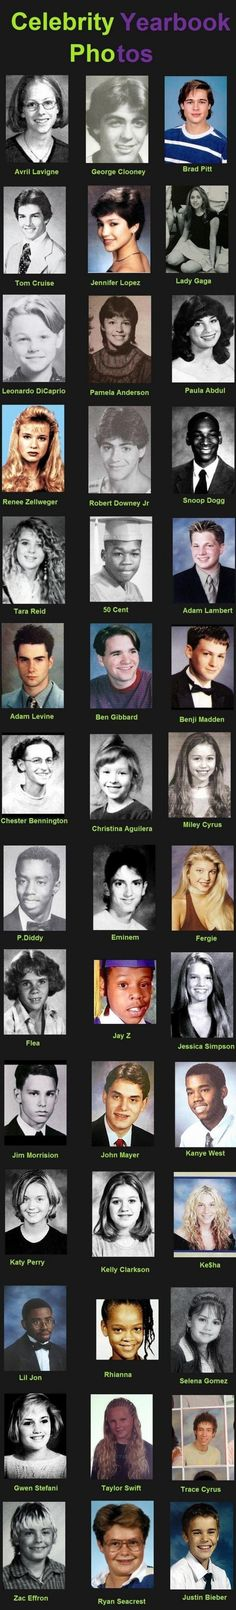 Some I recognise well, like Selena Gomez, Leonardo DiCaprio, Rihanna and Adam Levine, but EMINEM YOU SCARED ME Lol that moment when you see Justin beiber at the bottom of the page ha! Eminem, Young Celebrities, Celebs, Young Actors, Celebrity Yearbook Photos, Yearbook Pictures, Funny Yearbook Quotes, Celebrity Pictures, Rage Comic